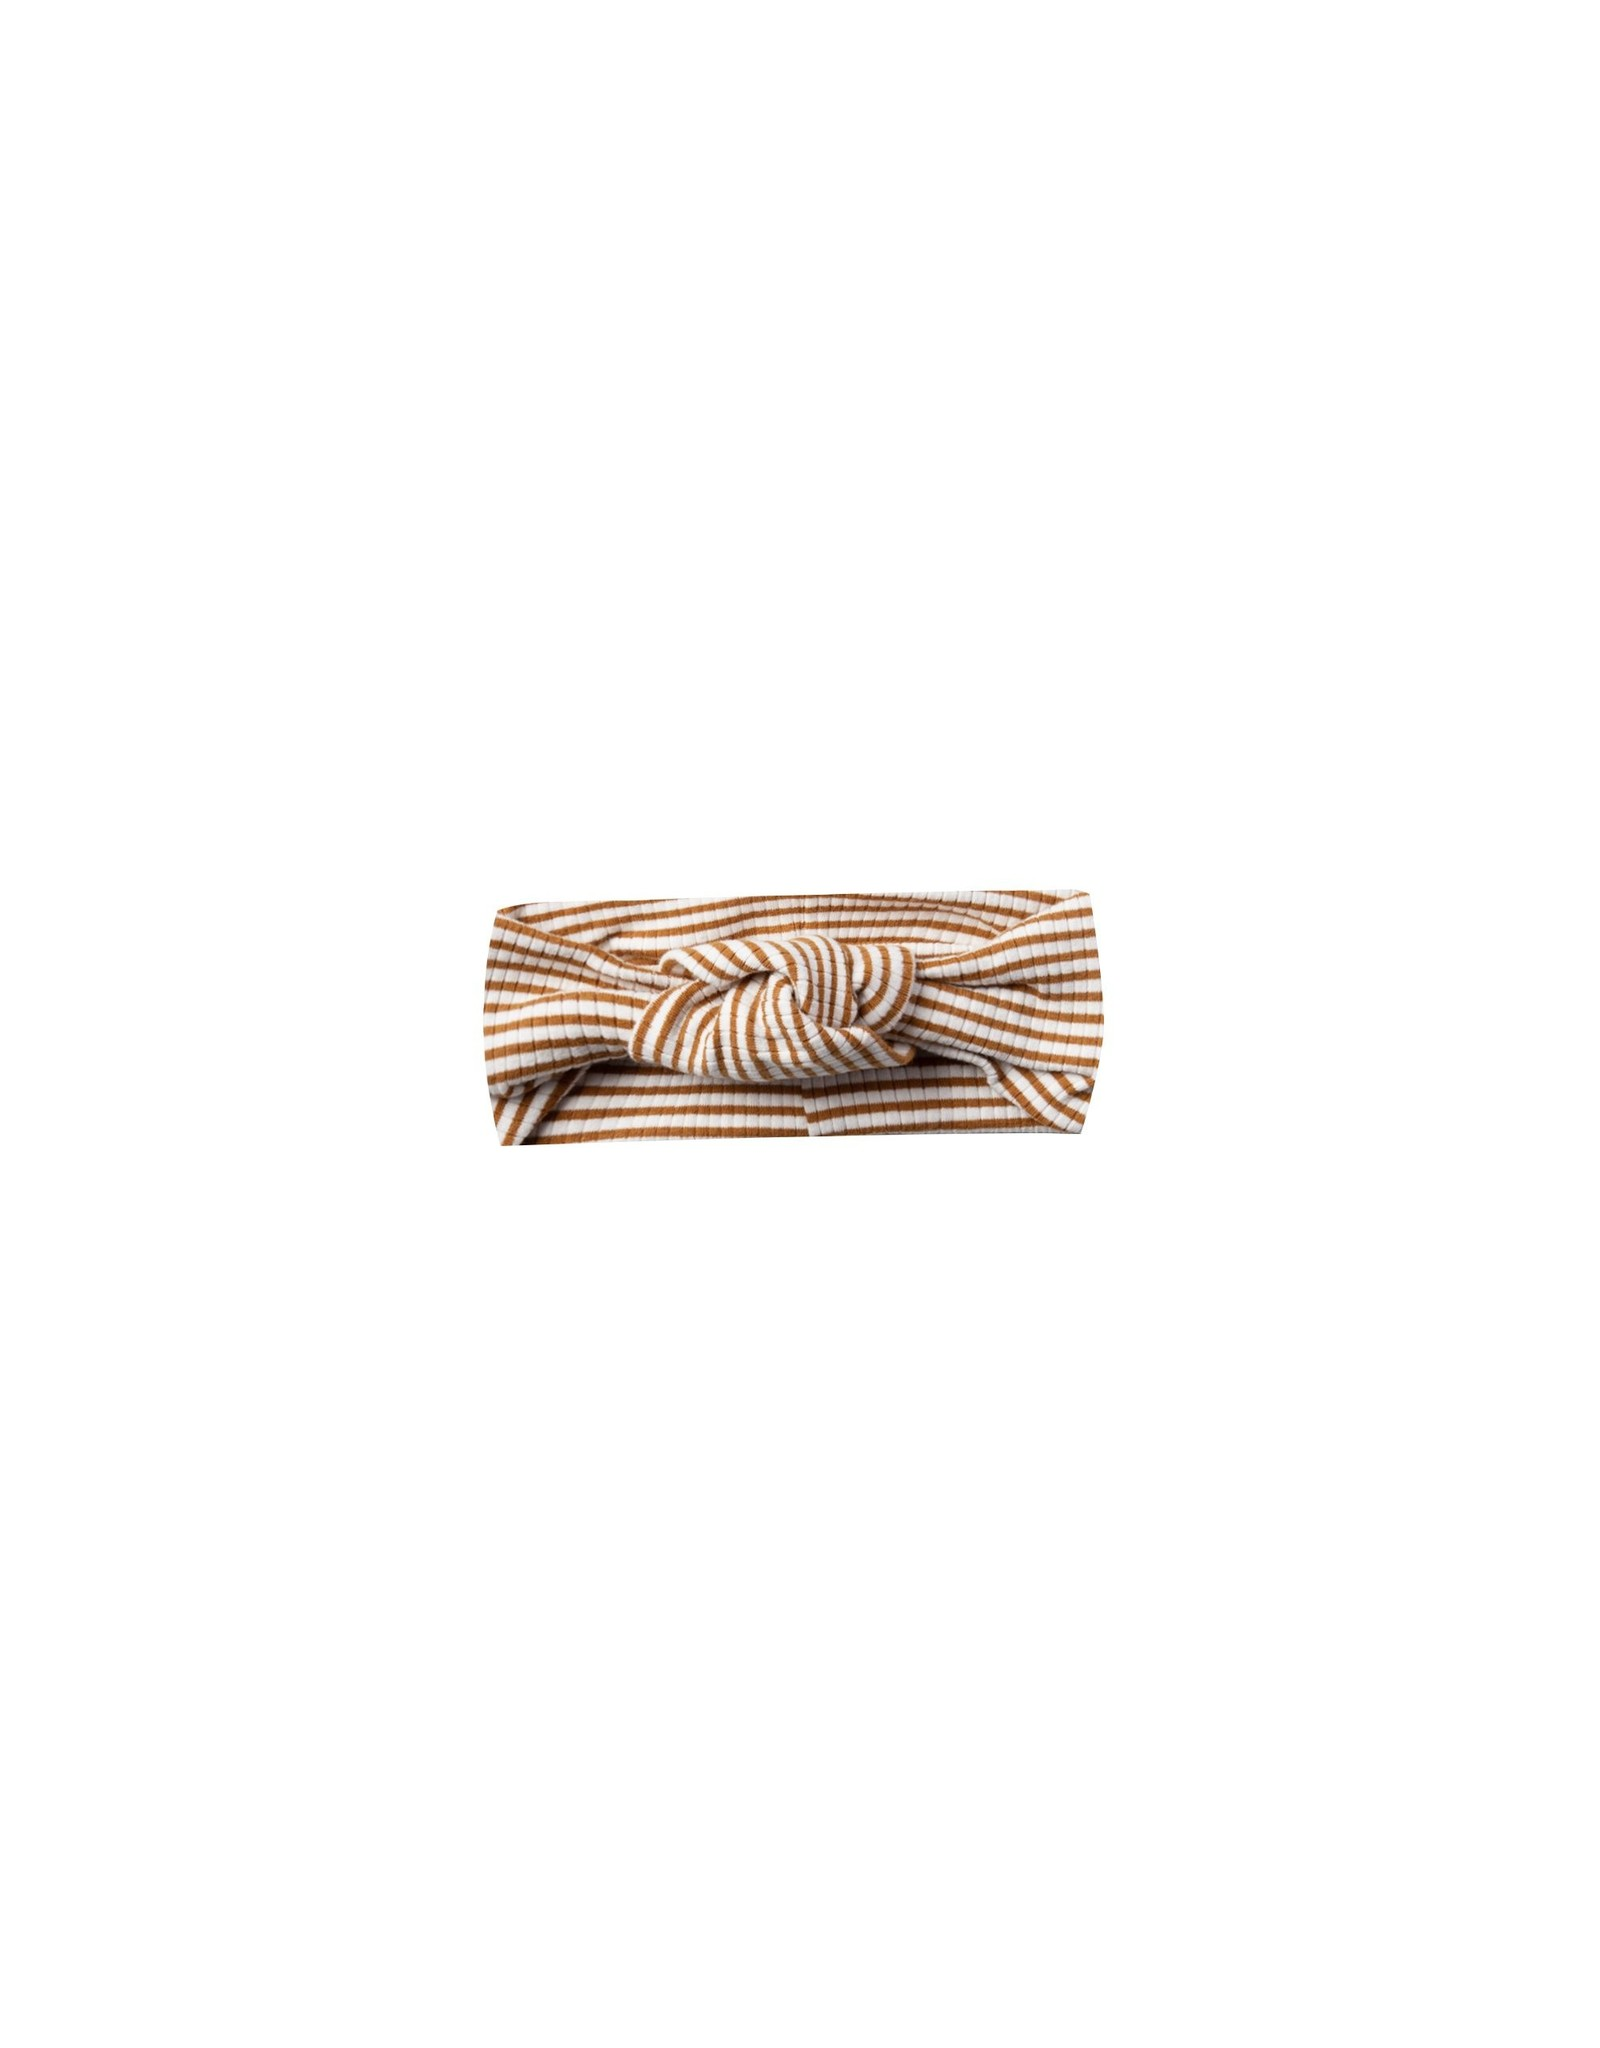 Quincy Mae Ribbed Turban Headband-Walnut, Grey, or Petal